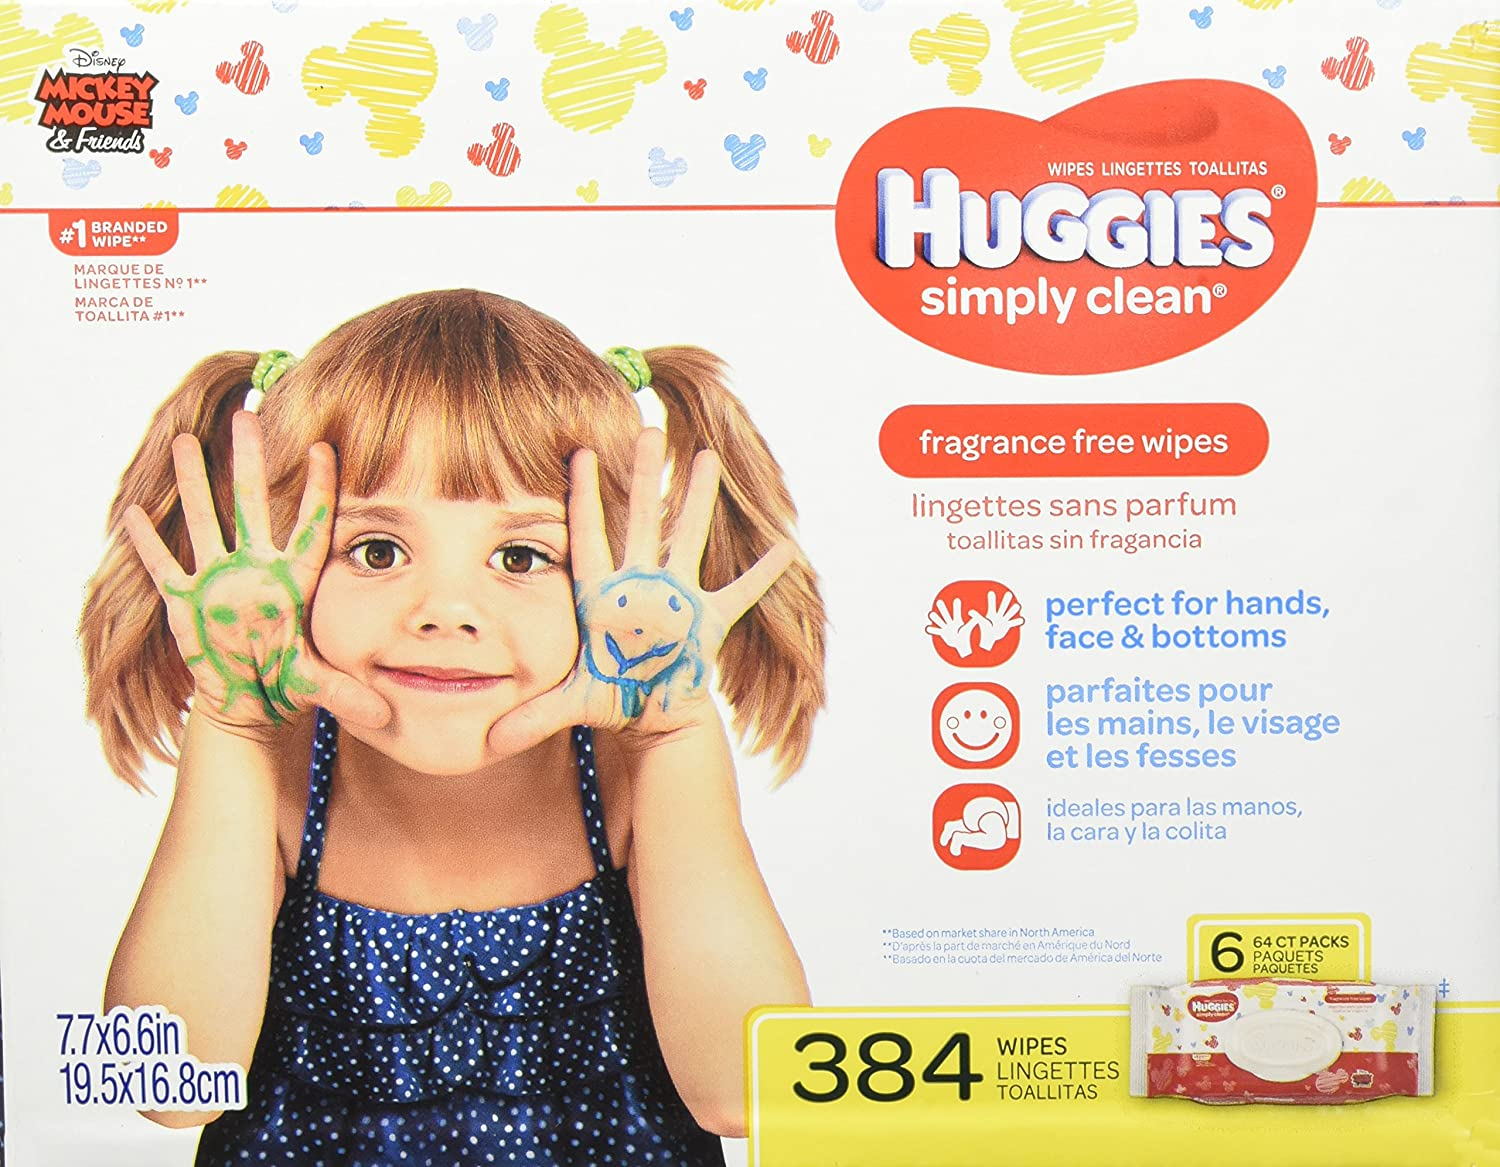 Huggies Simply Clean Fragrance-free Baby Wipes, Soft Pack 6 Pack, 384 Count Kimberly Clark